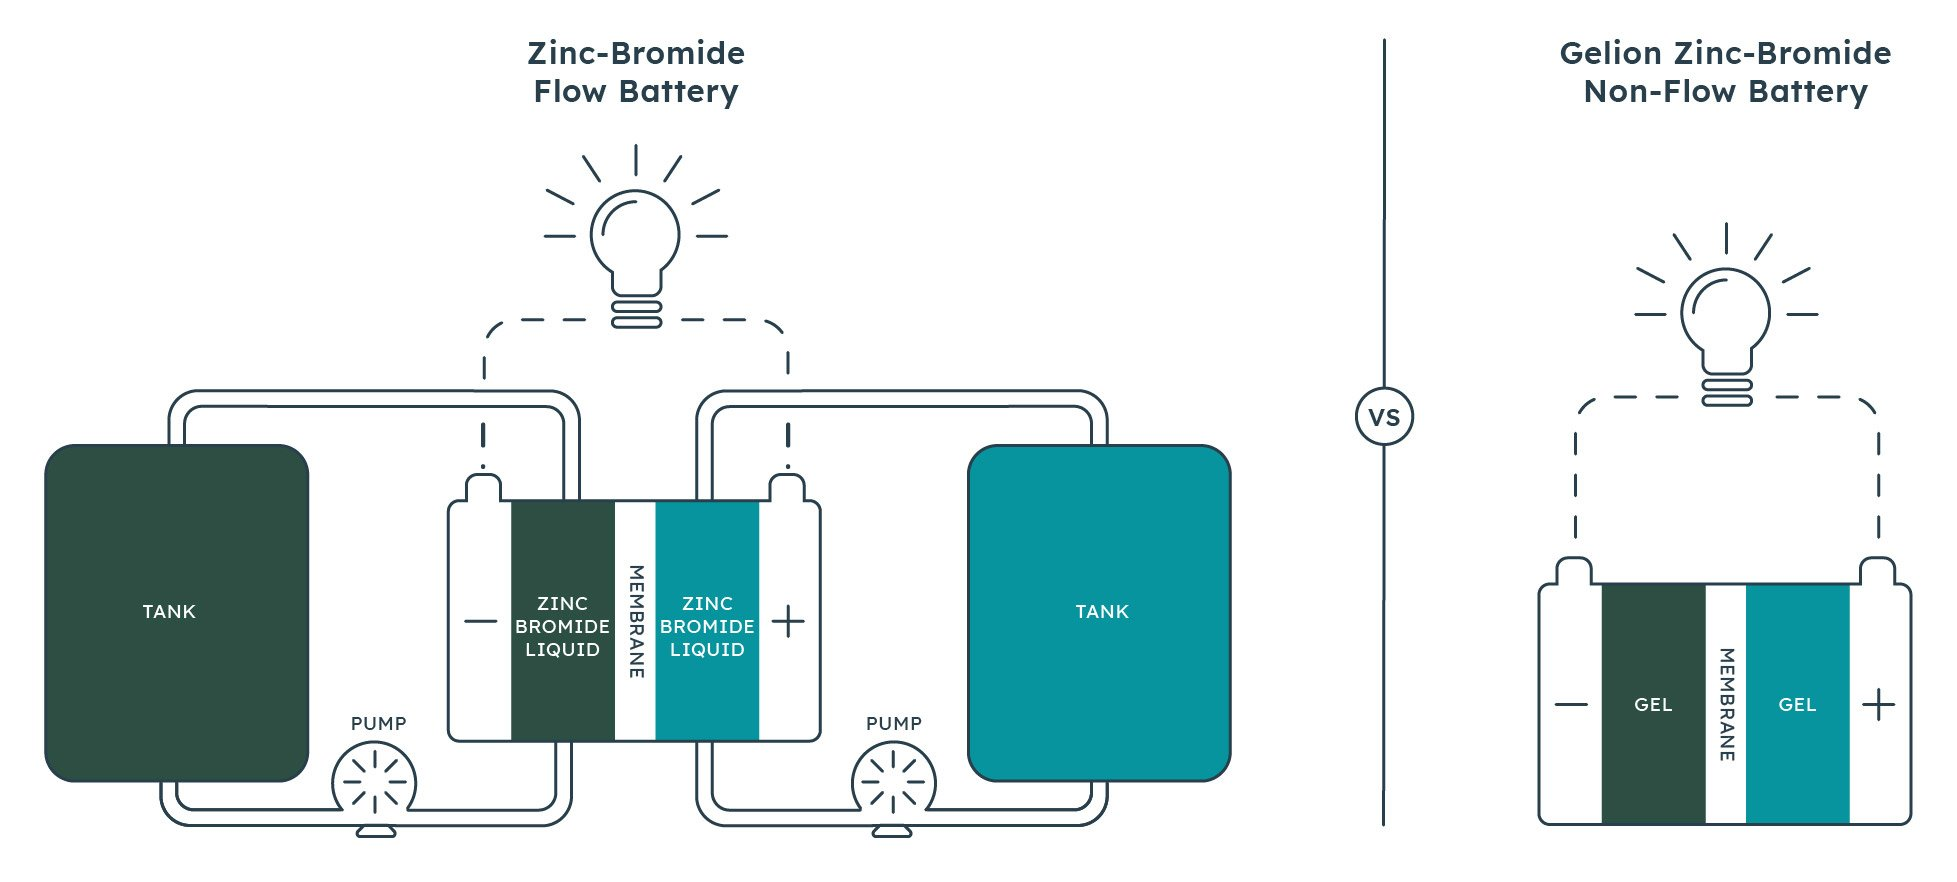 Gelion's breakthrough non-flow zinc-bromide (ZnBr2) battery targets the growing stationary energy storage market with a competitive levelized cost of energy storage (LCOES) supported by low-capacity fade and more than 5,000 cycles.